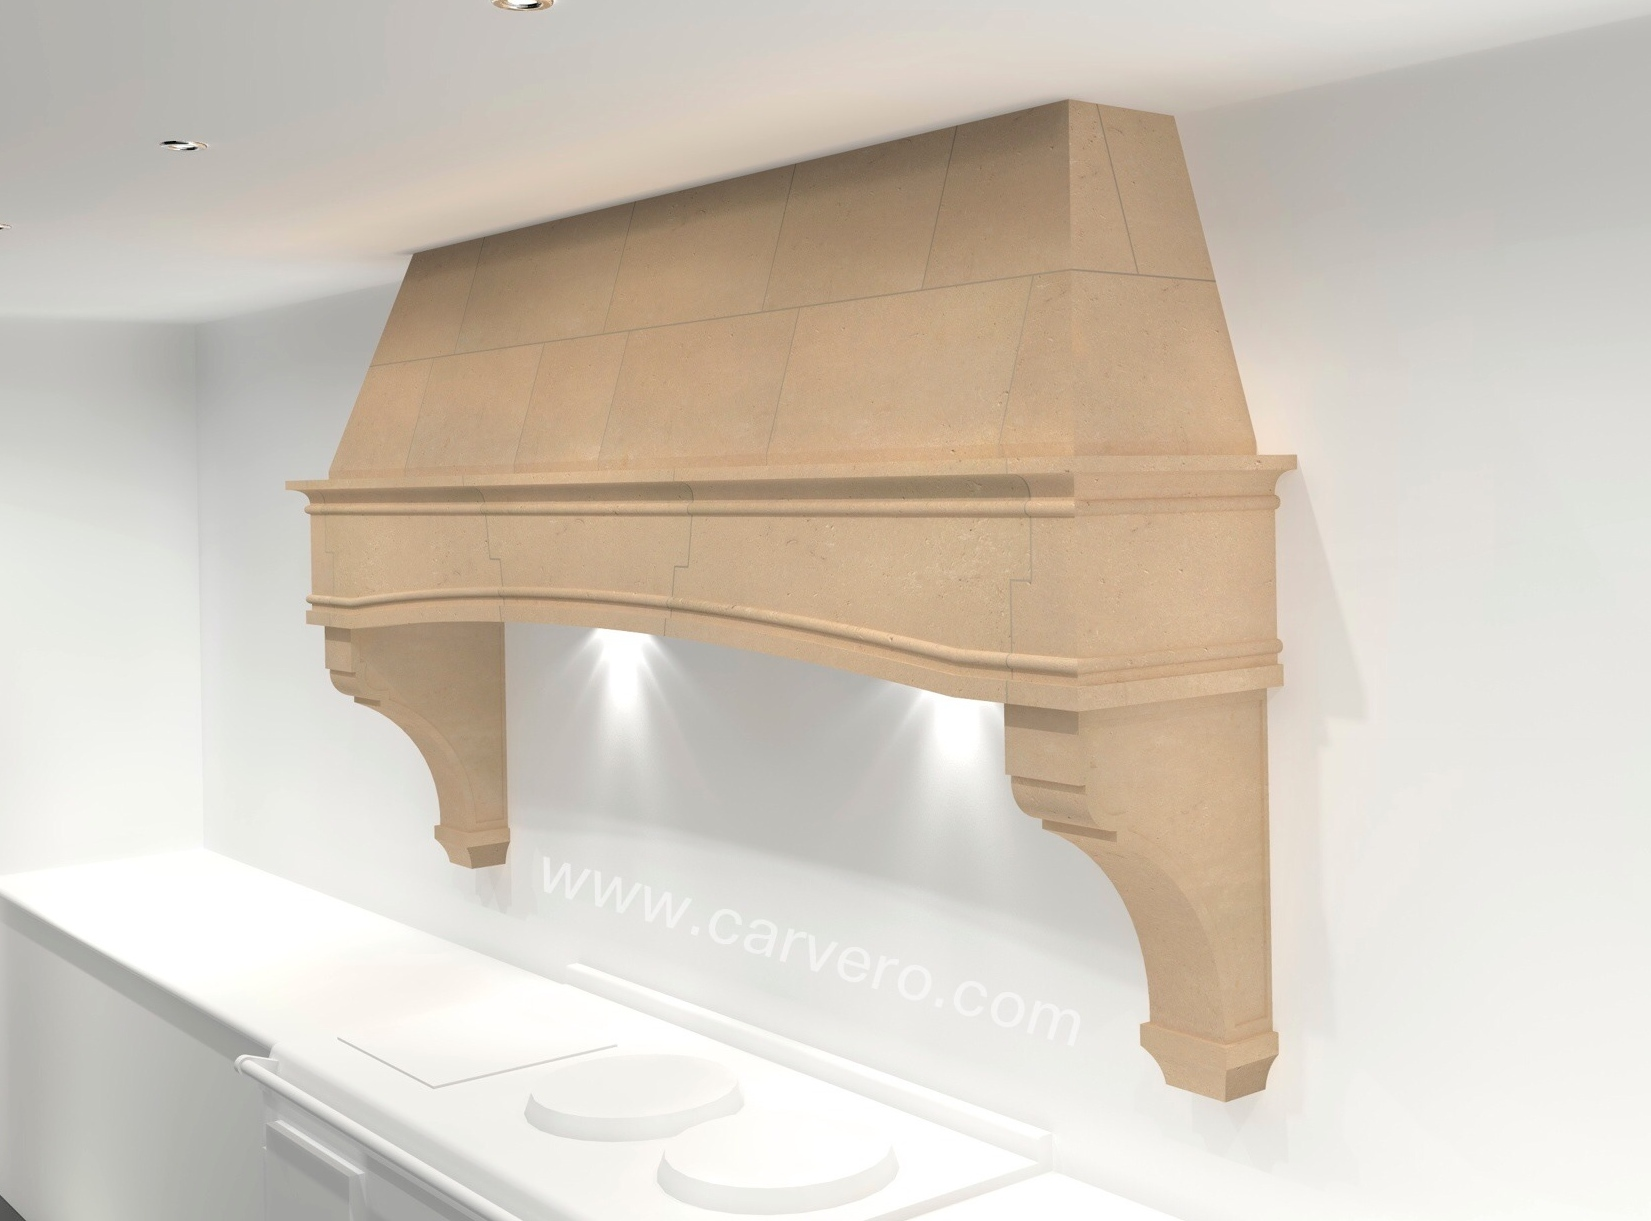 French Style Kitchen Stone Canopy - Hood & Latest Product Addition: A Country Kitchen Stone Canopy - AGA ...